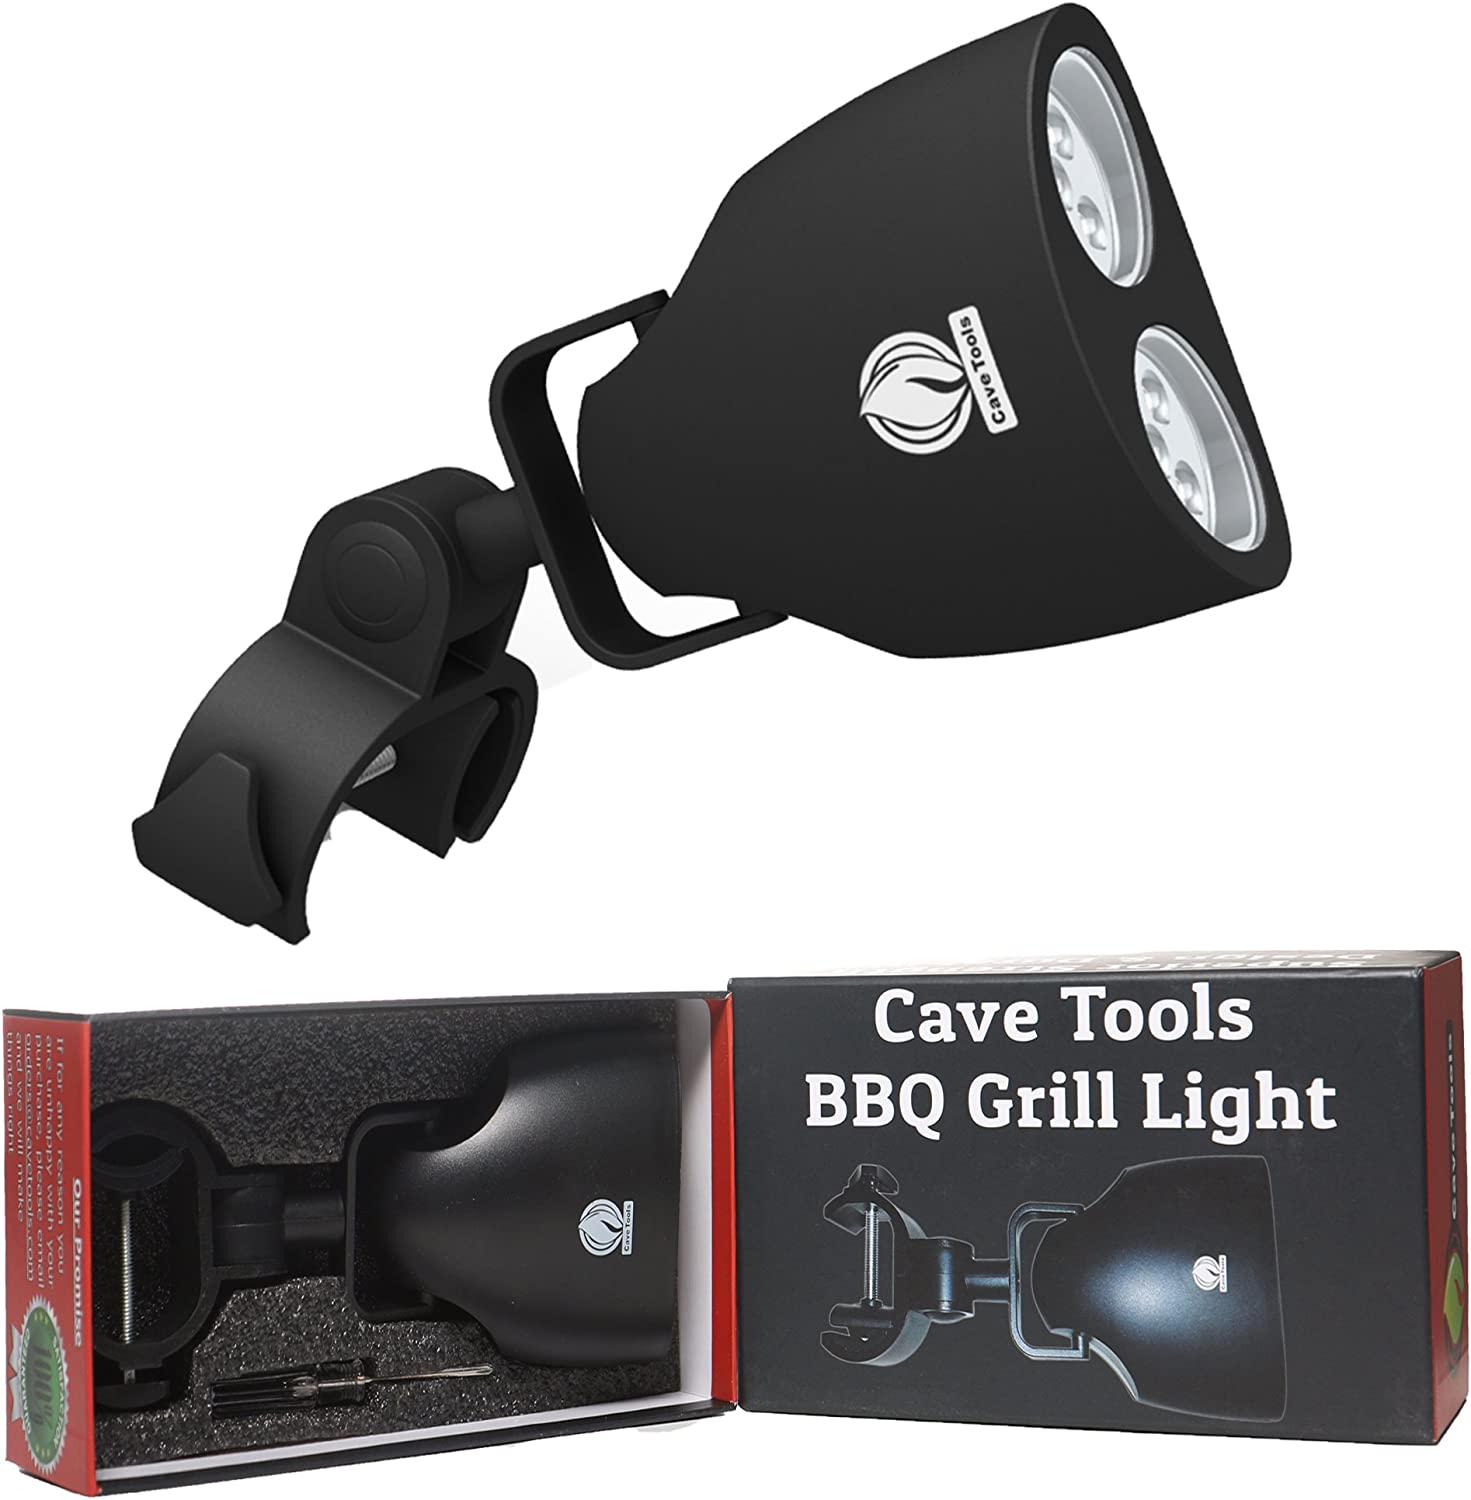 Cave Tools Barbecue Grill Light for Outdoor Grill - Fits Round & Square Bars on Any BBQ Pit - 10 LED for Grilling at Night - BBQ Grill and Smoker Accessories : Patio, Lawn & Garden